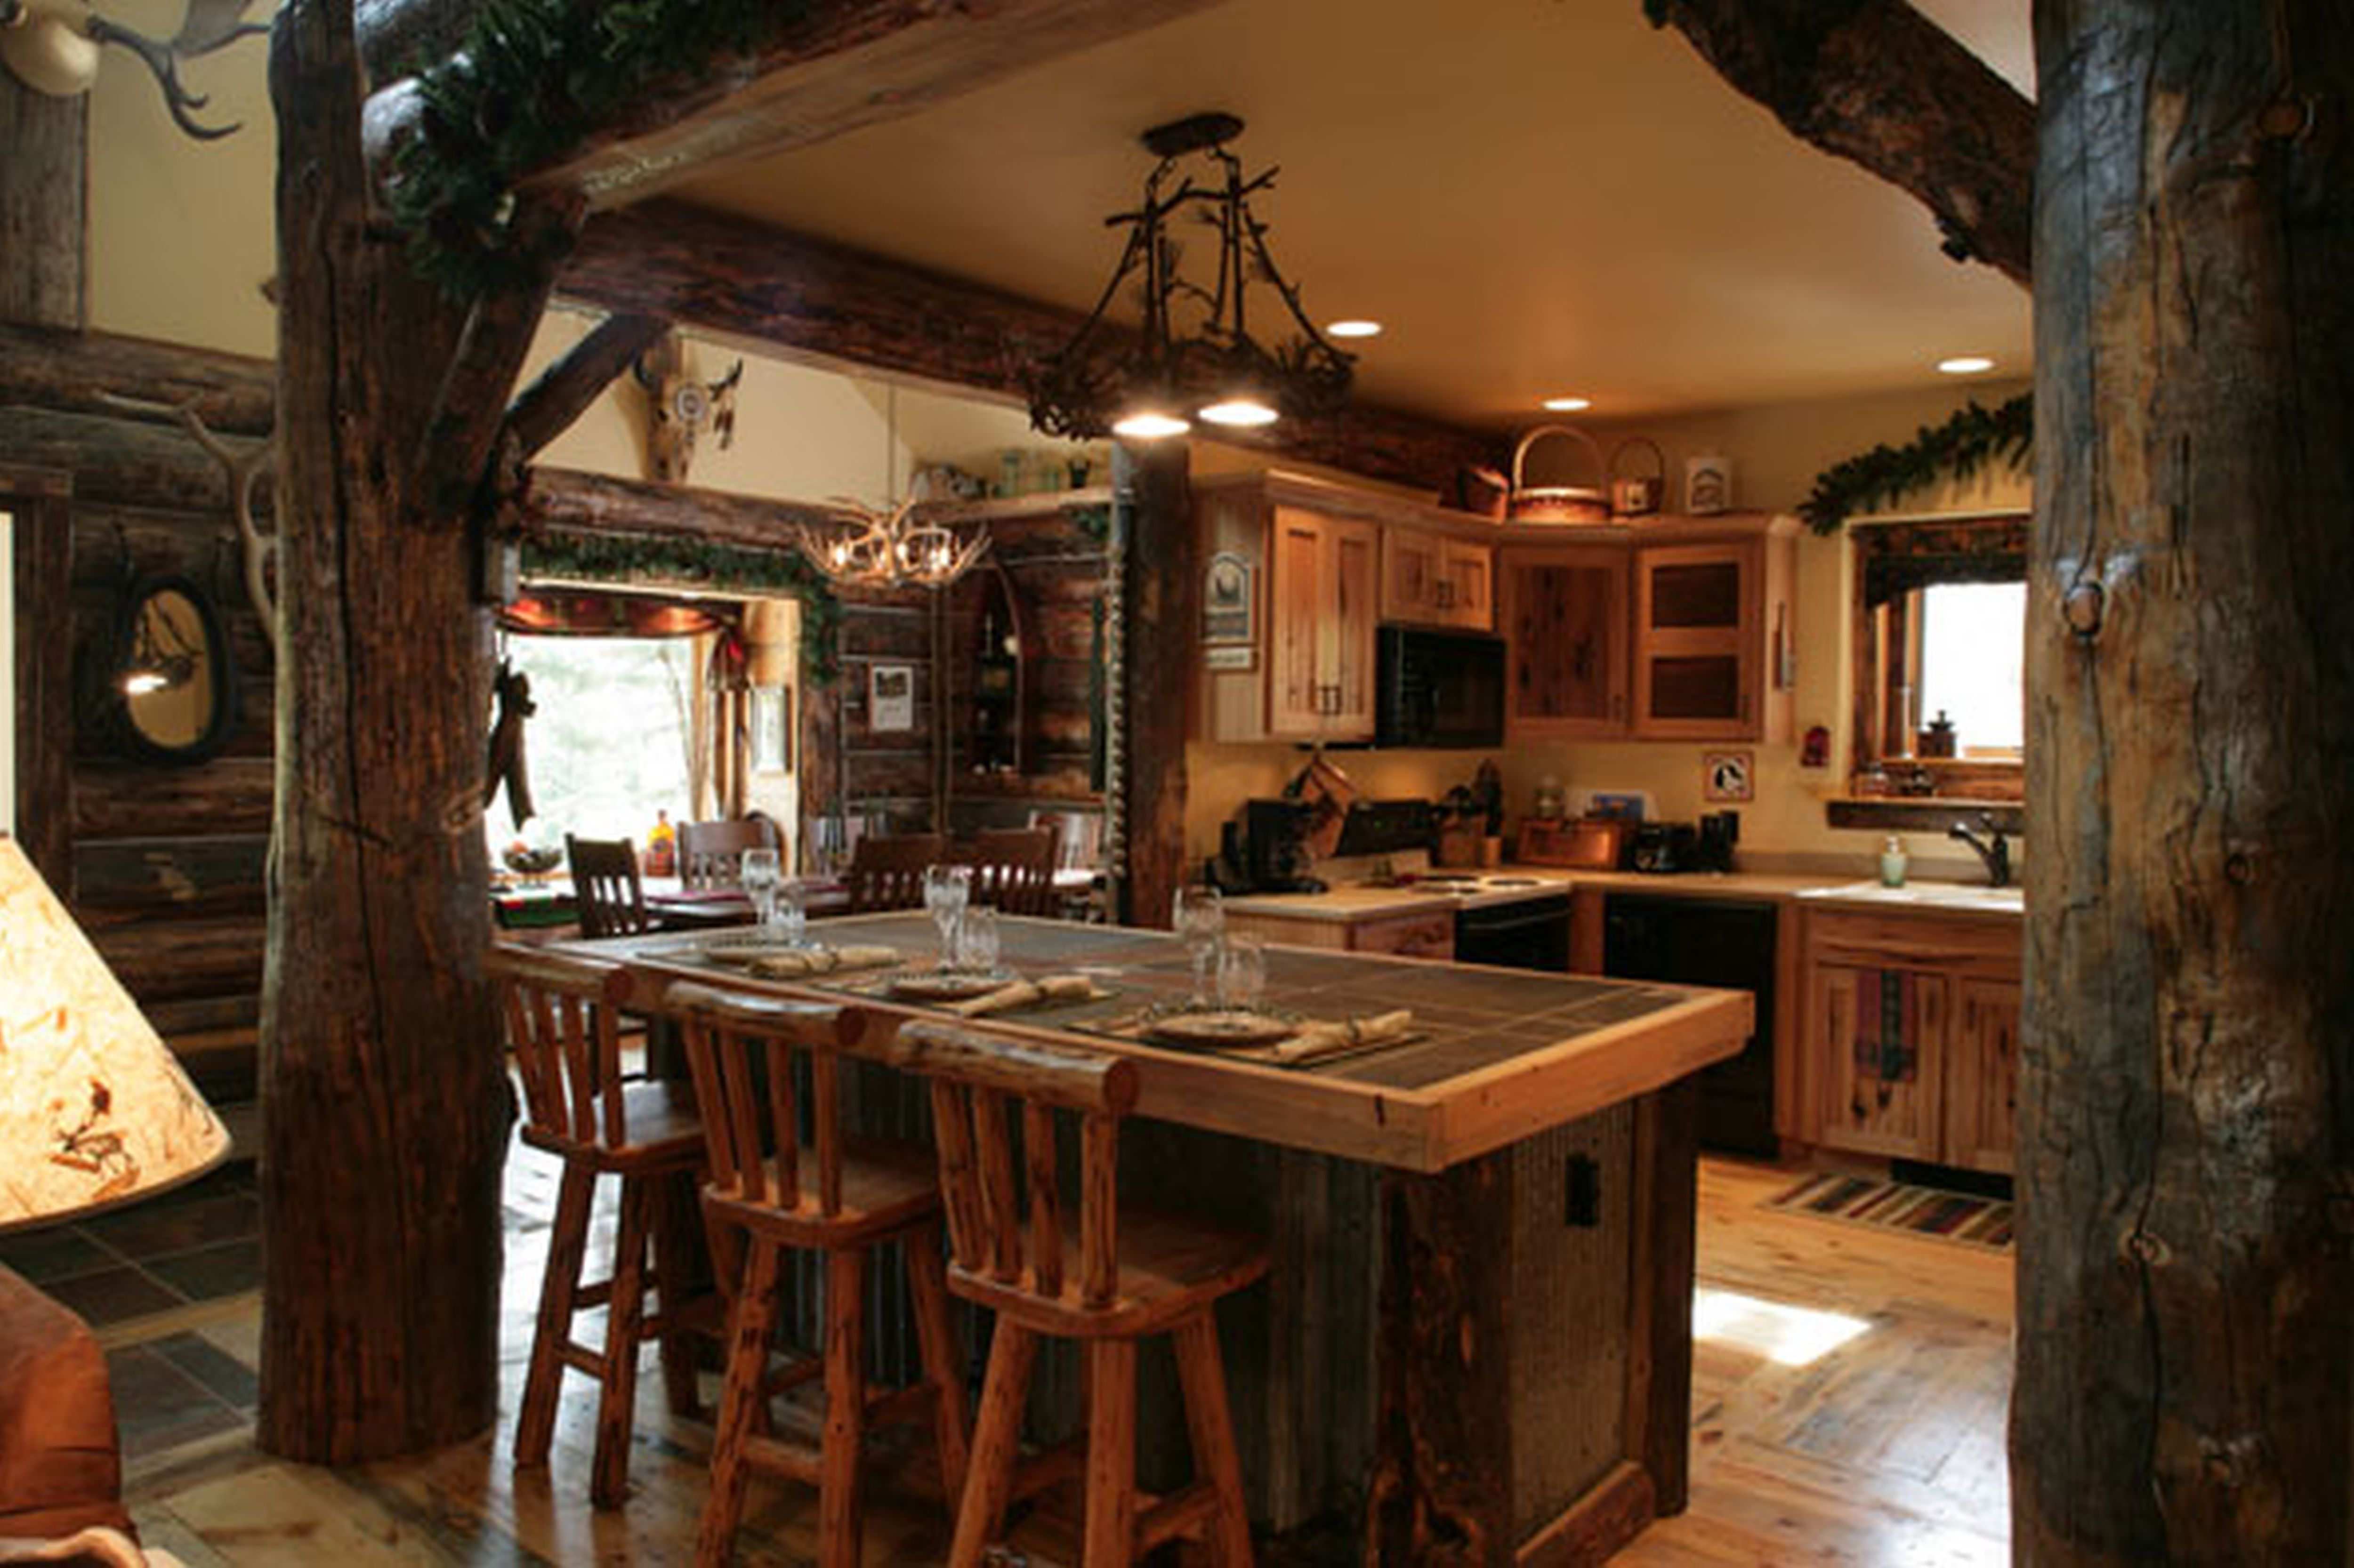 country interior design - 1000+ images about Log Home Ideas on Pinterest Log home kitchens ...